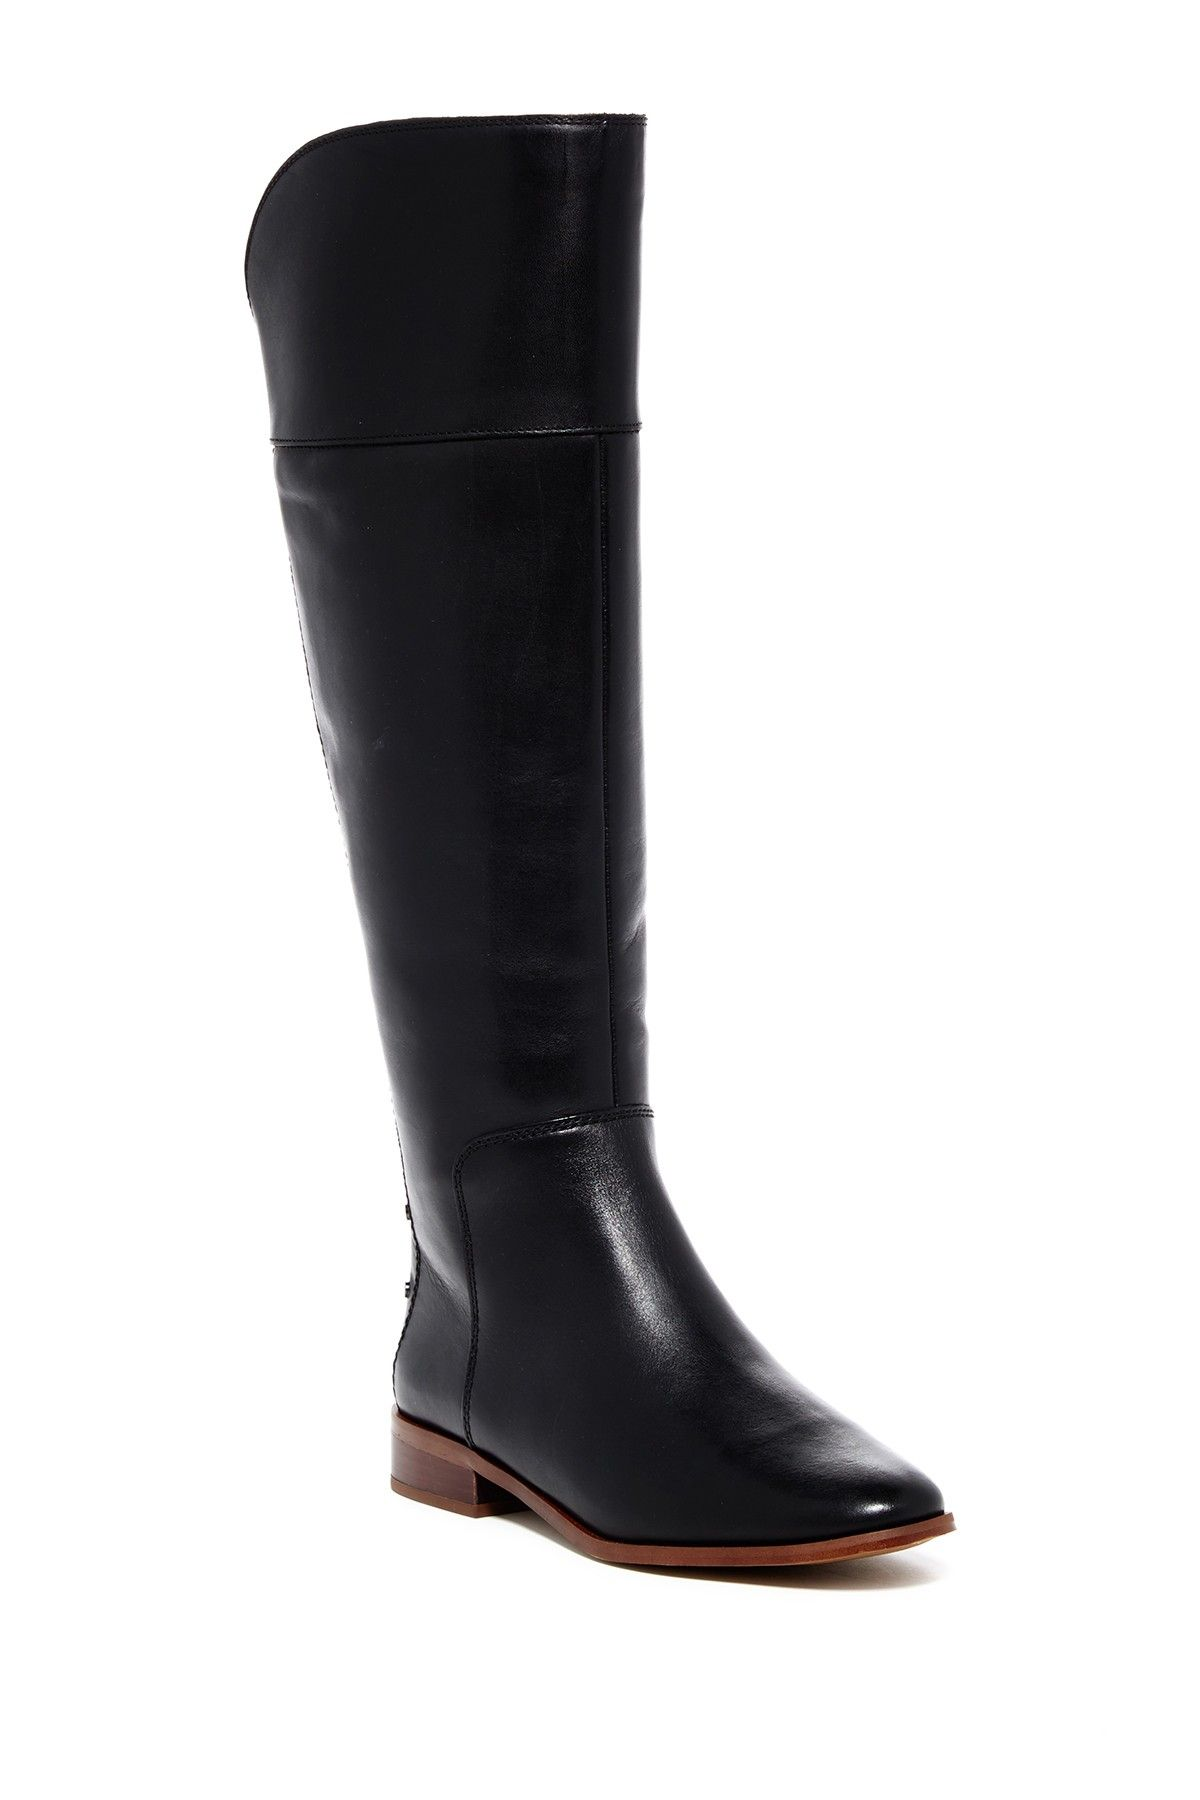 357a3691e0f5 Roselle Leather High Boot by Franco Sarto on  nordstrom rack